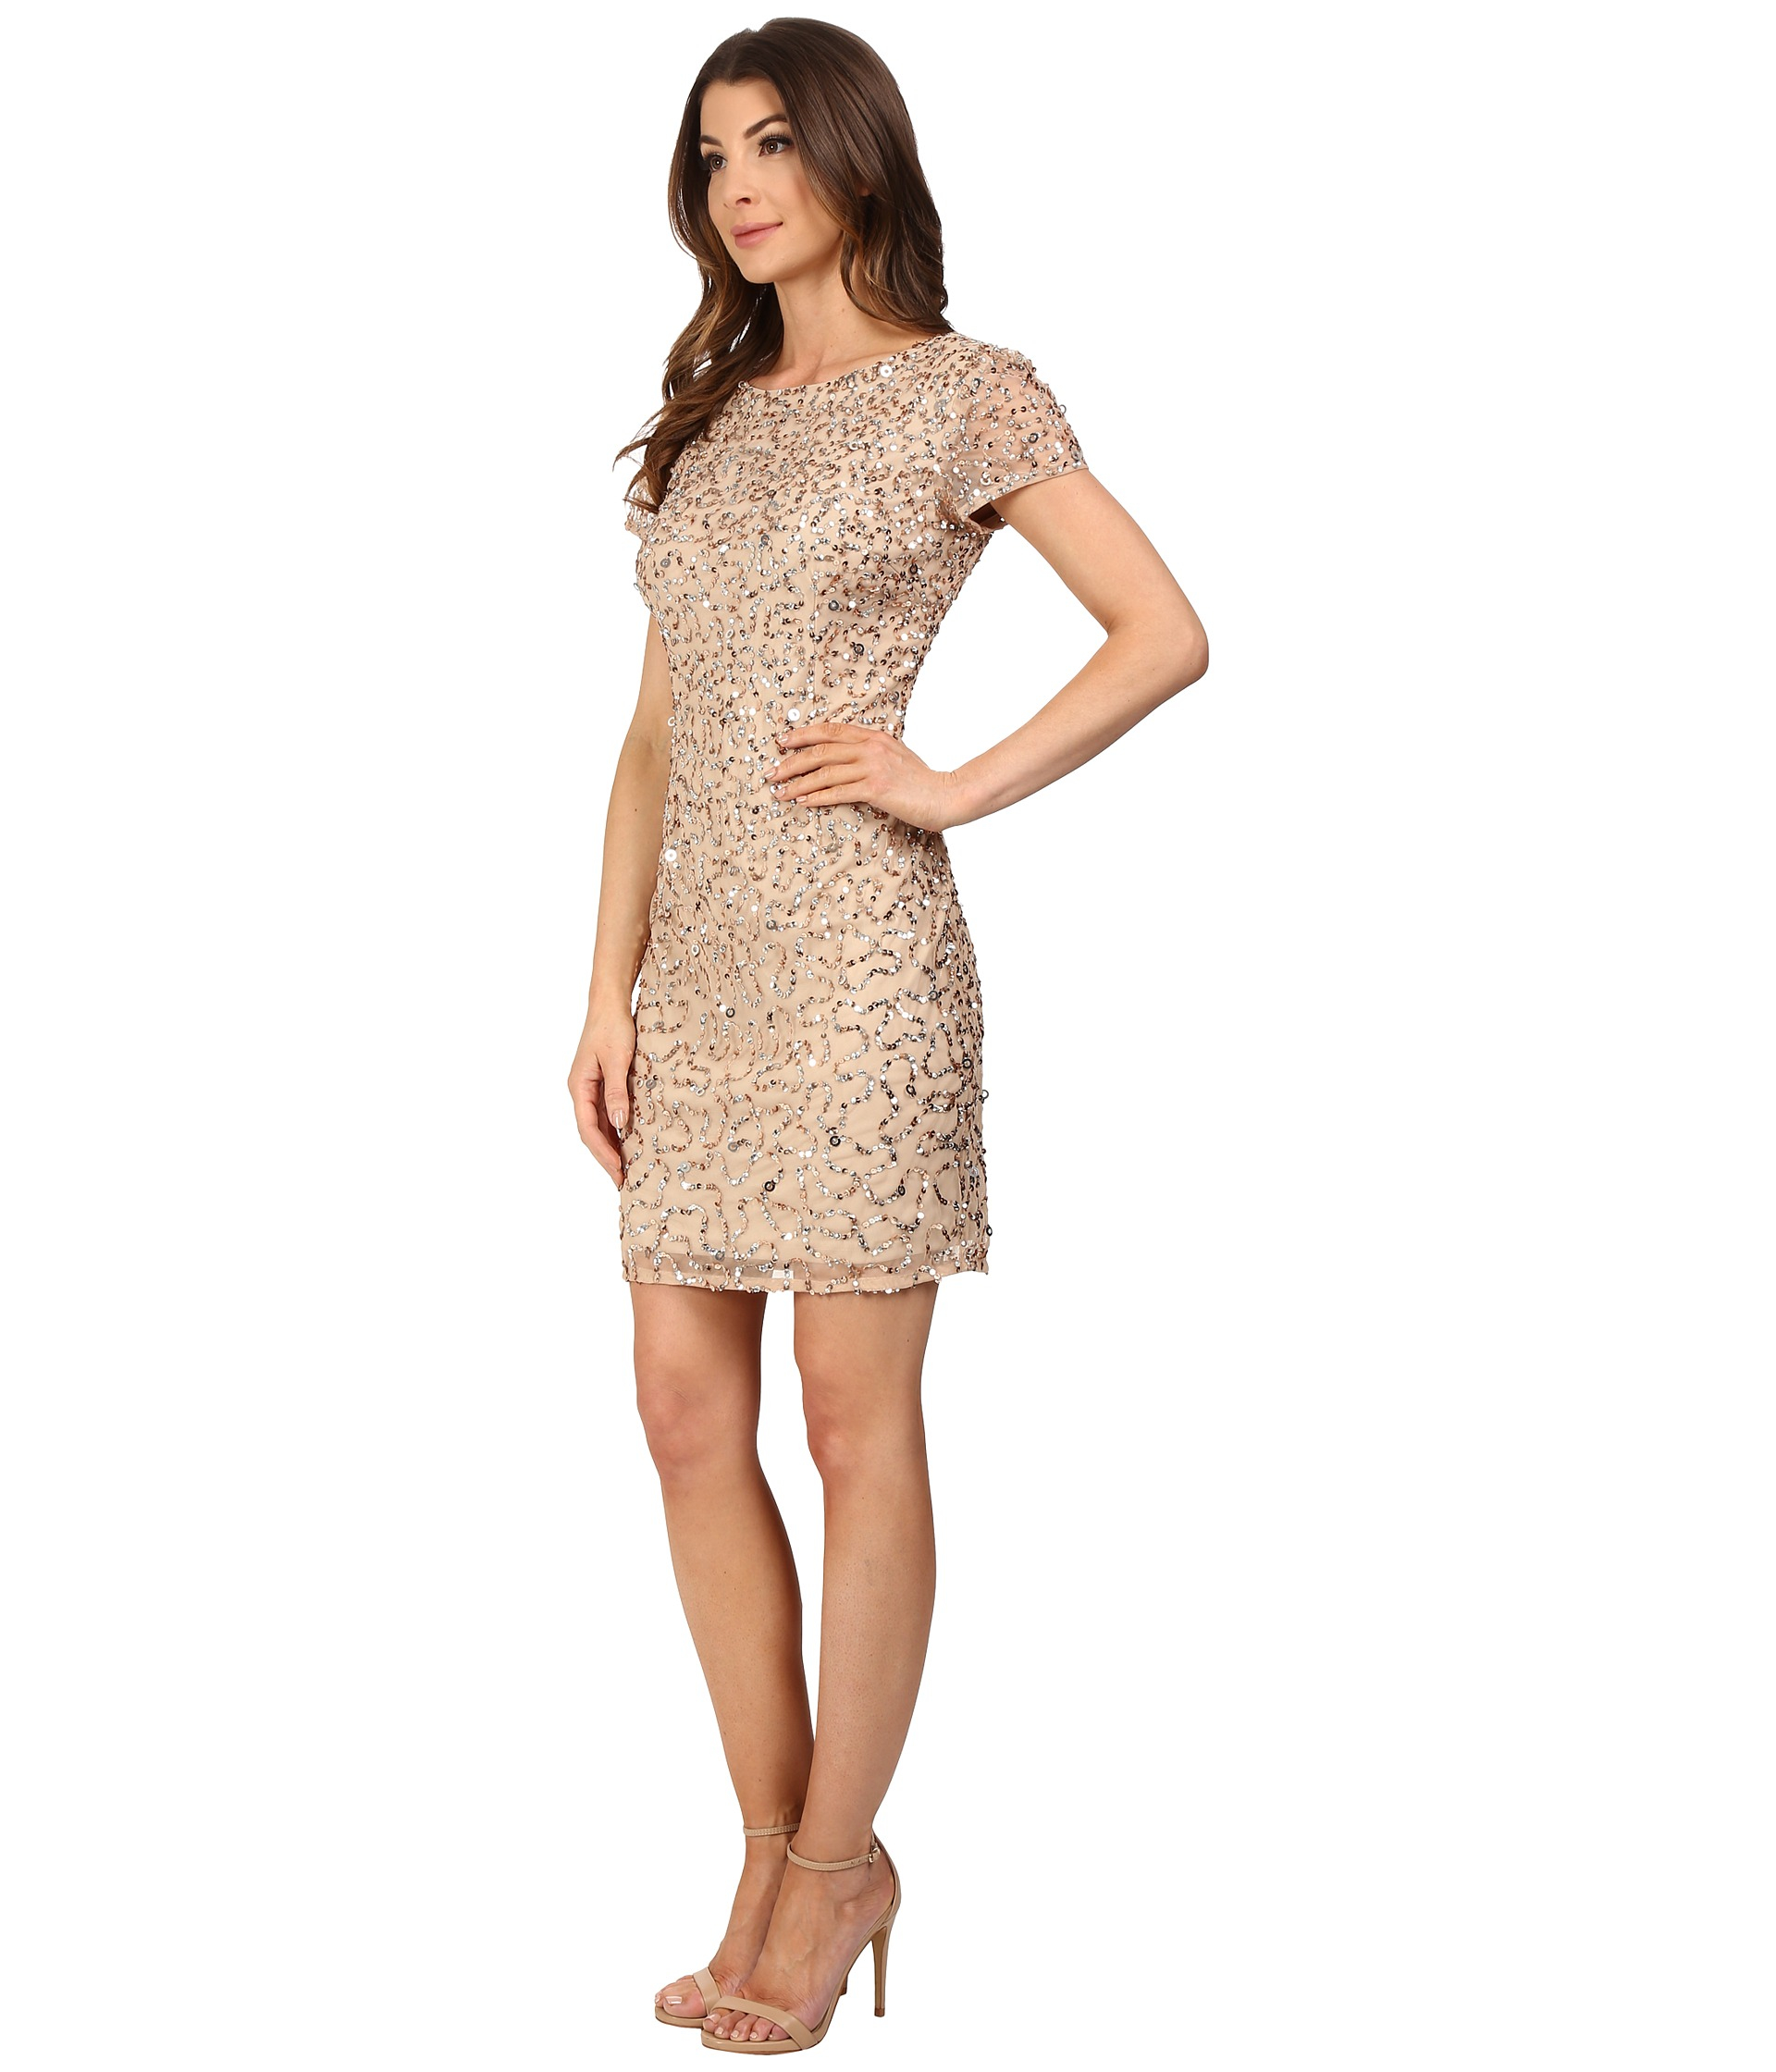 f11e596e3ad Lyst - Adrianna Papell Short Sleeve Beaded Cocktail Dress in Natural